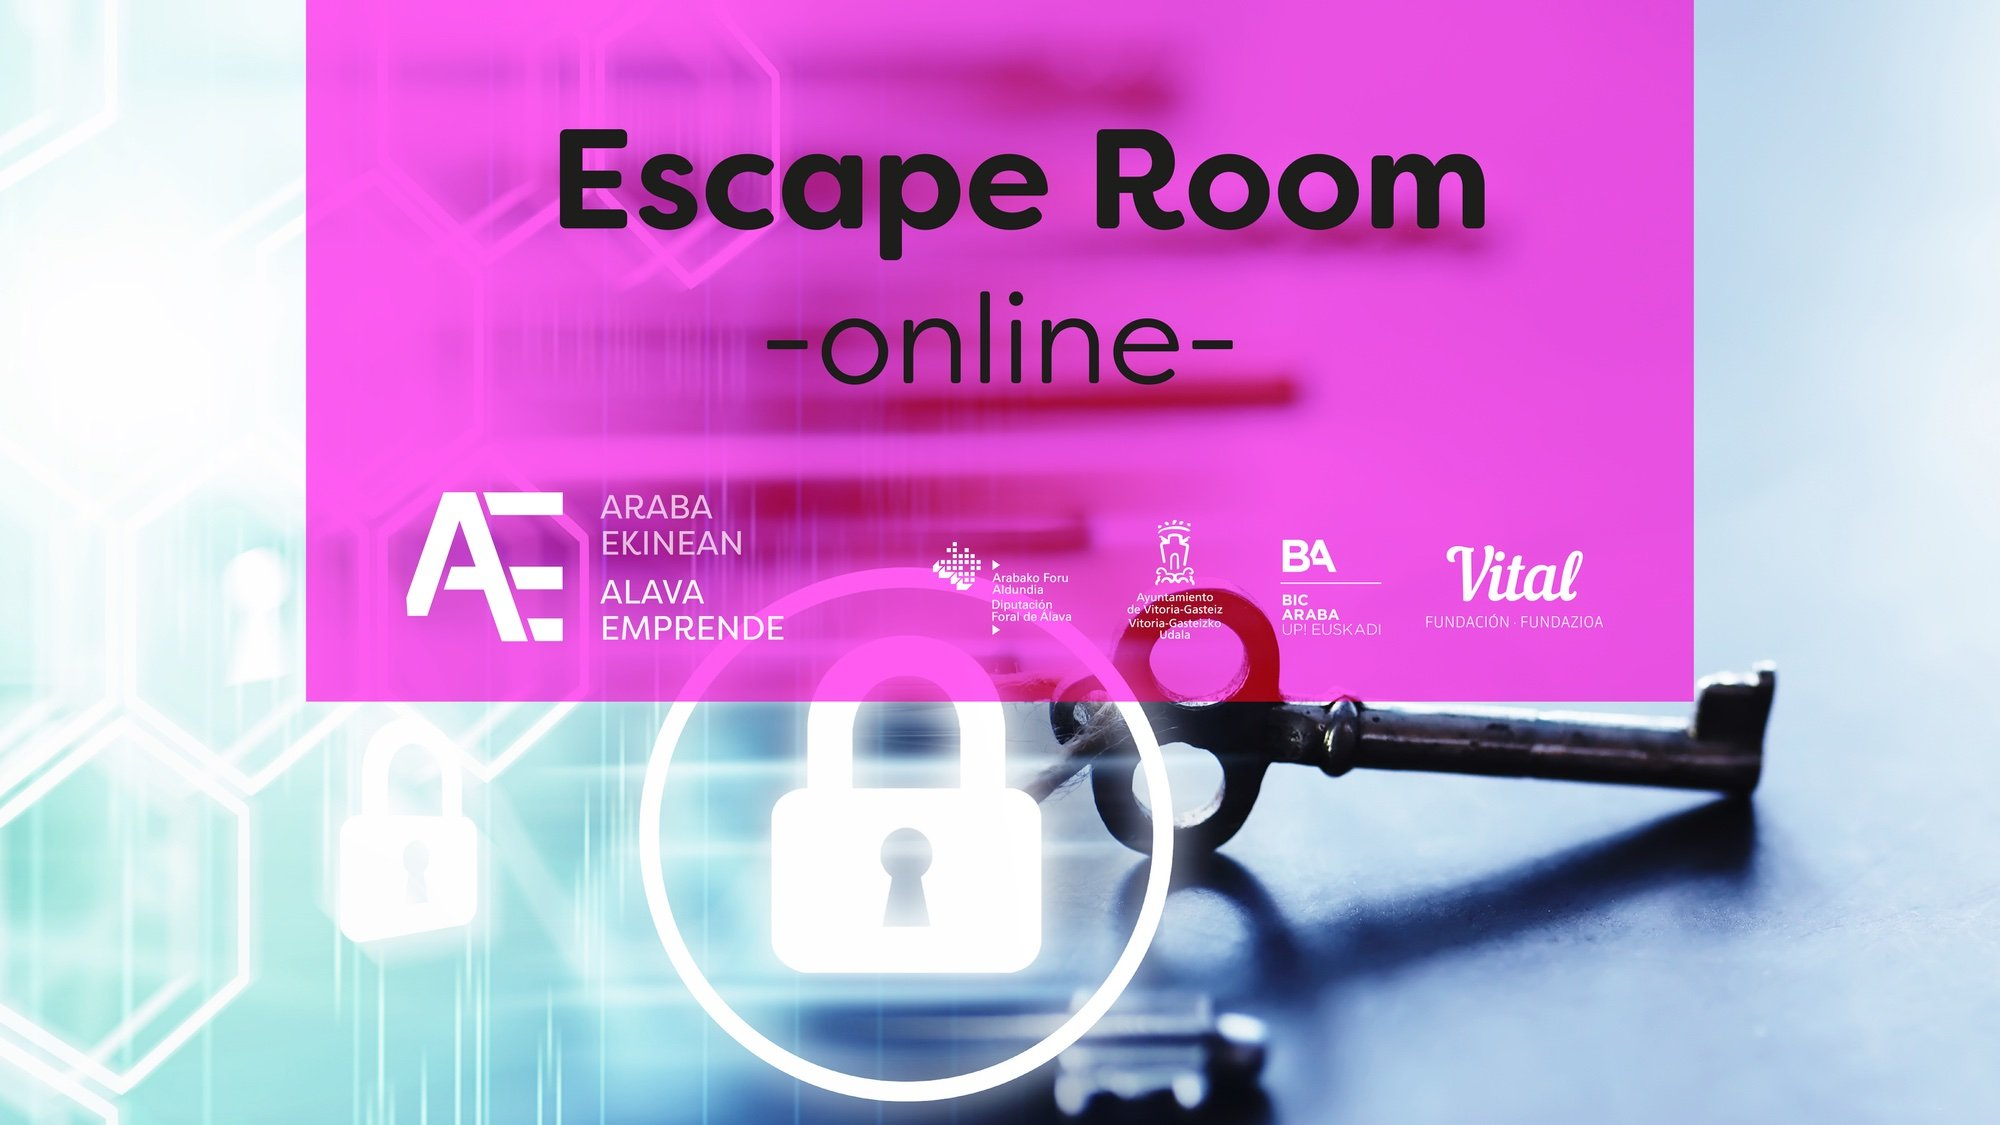 banners-REDES-escape